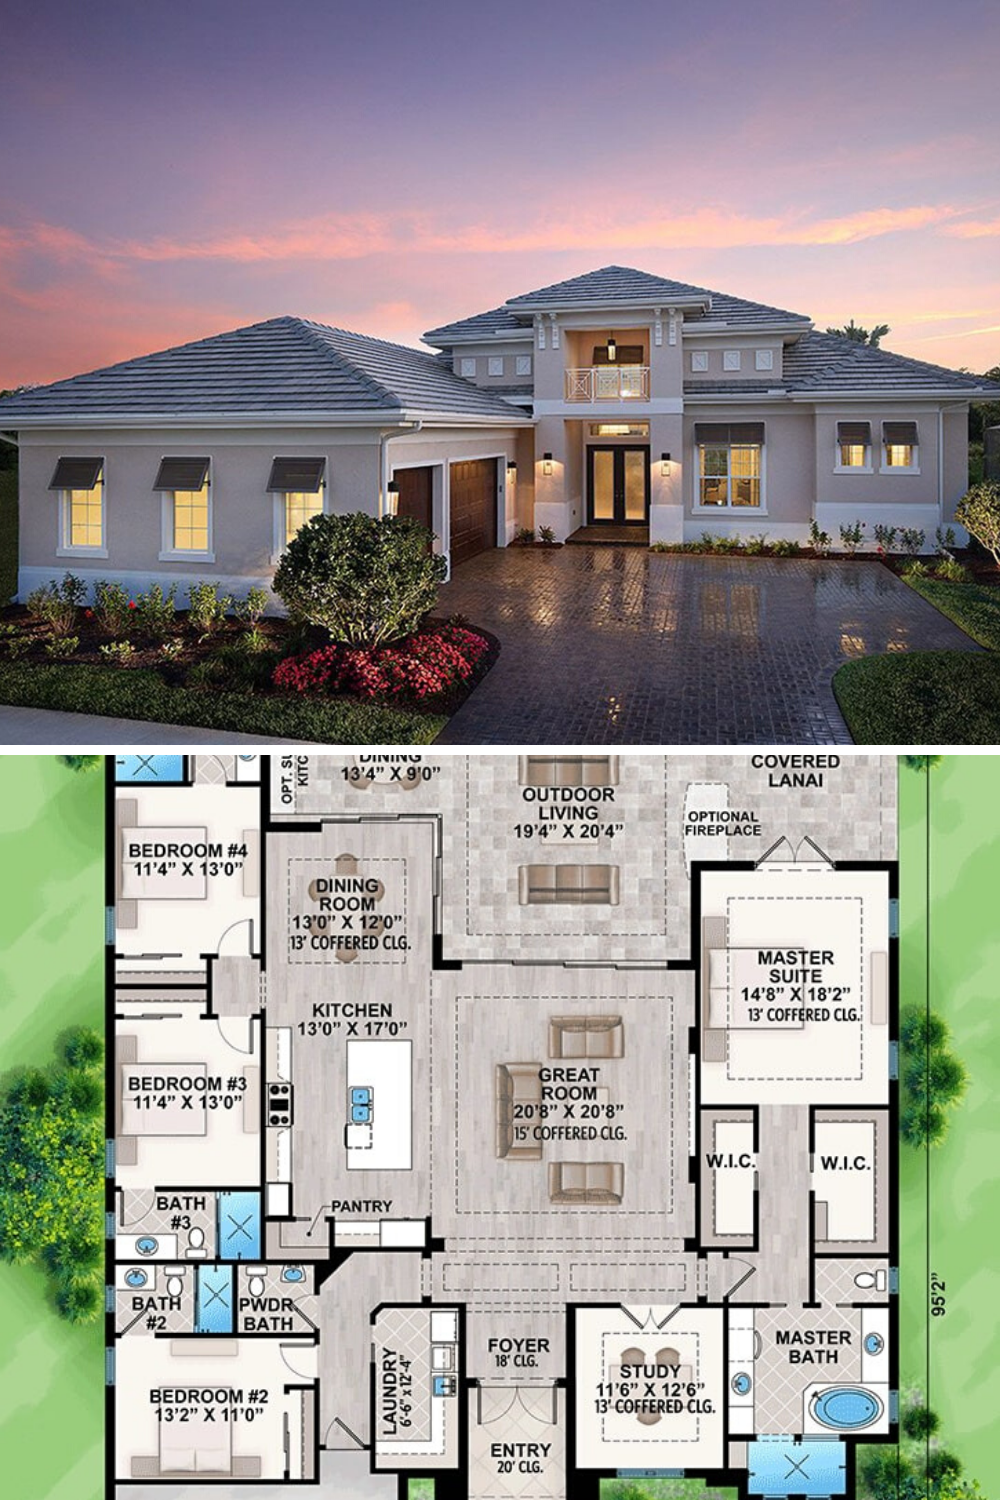 Single Story 4 Bedroom Florida Home Floor Plan